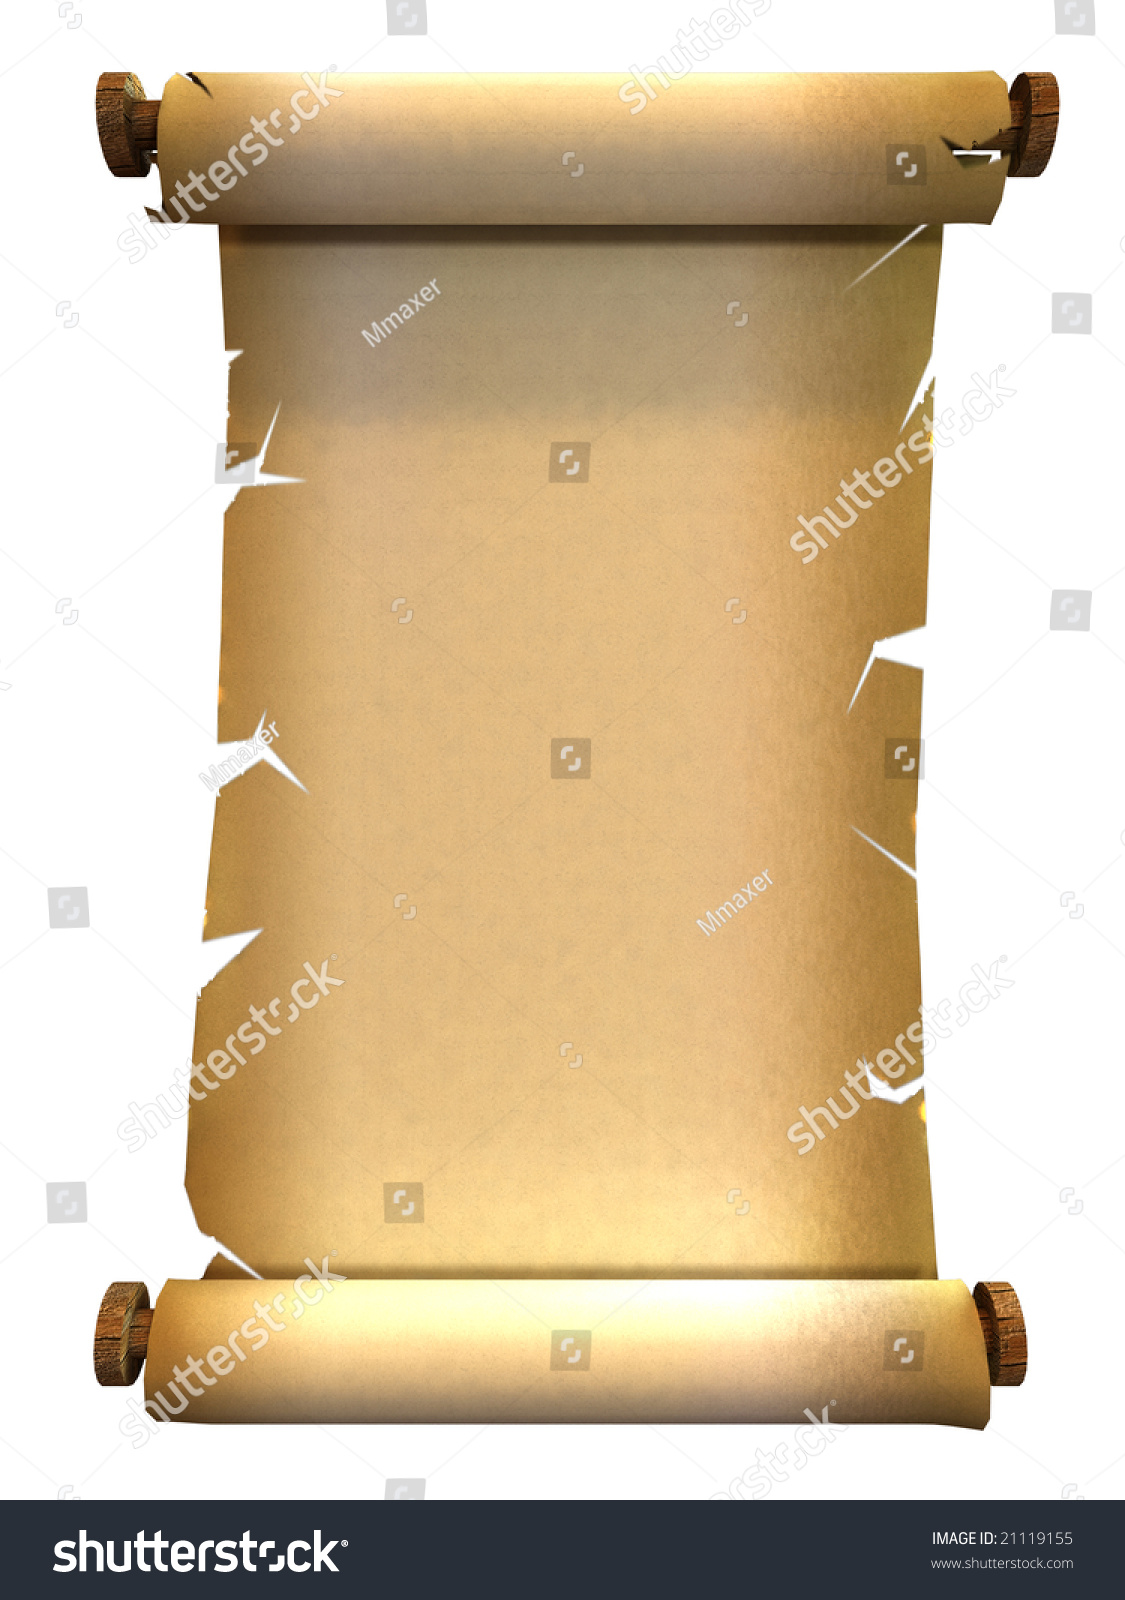 3d Scroll Of Parchment Photo: 3d Render Of An Ancient Paper Scroll Stock Photo 21119155